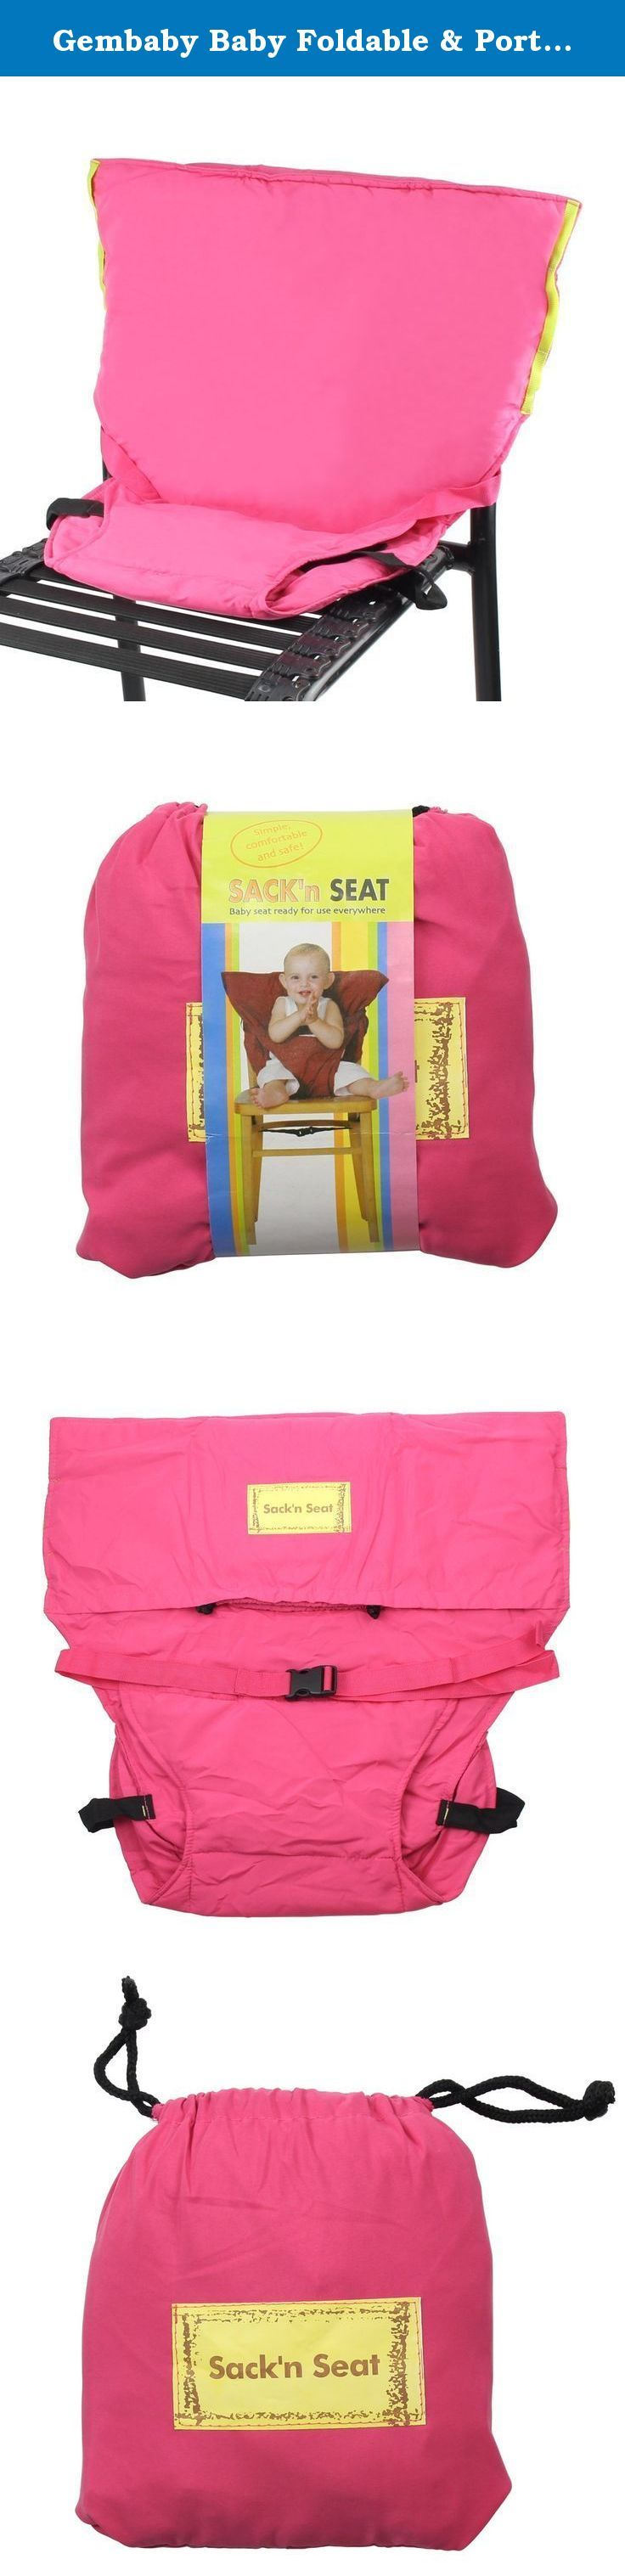 Gembaby Baby Foldable & Portable High Chair Safety Harness Pink